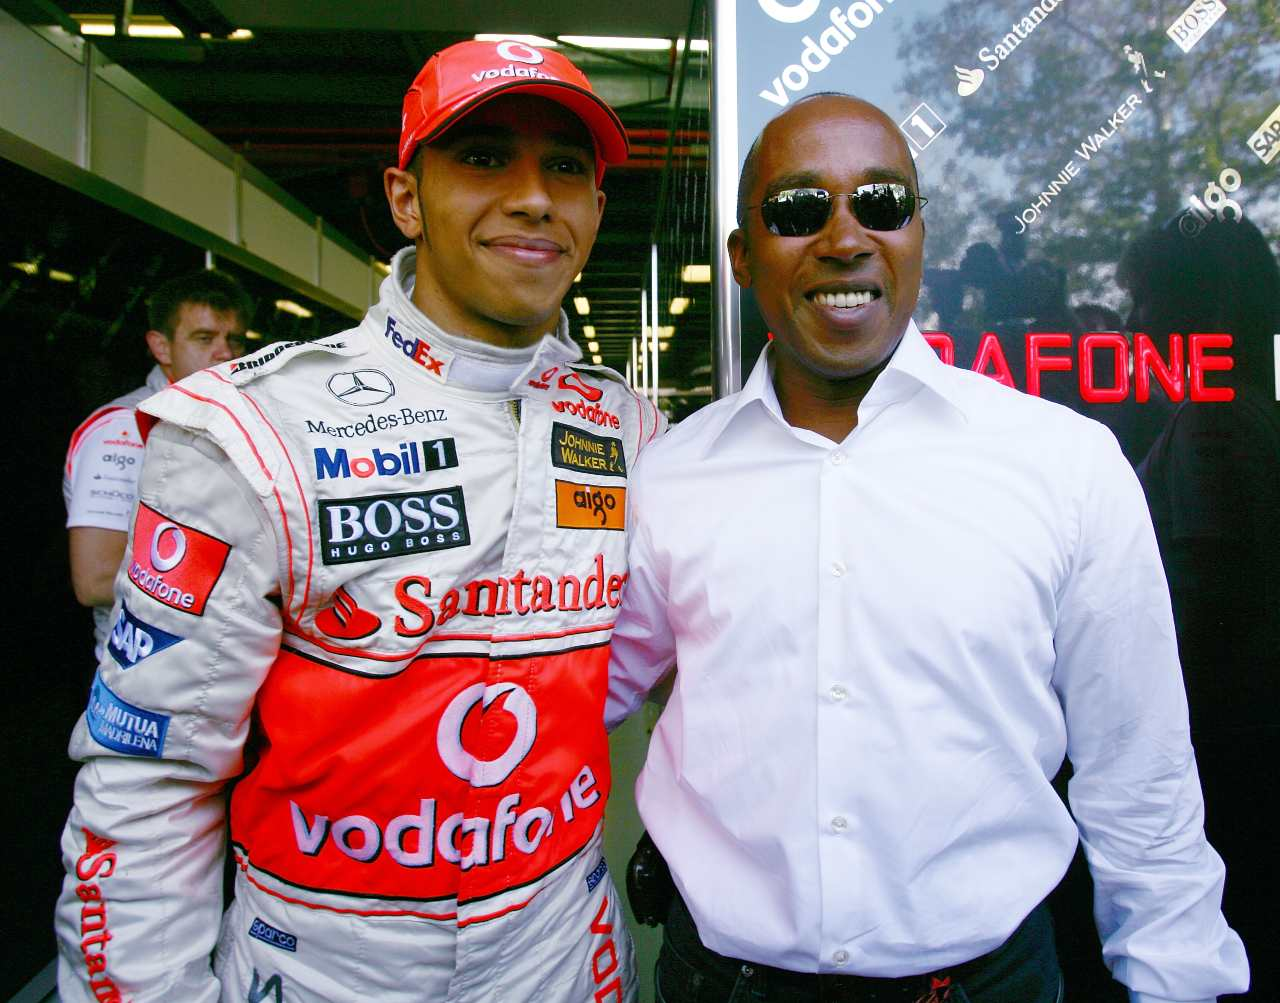 Lewis Hamilton with his father at the 2007 Australian Formula 1 Grand Prix (Getty photo)